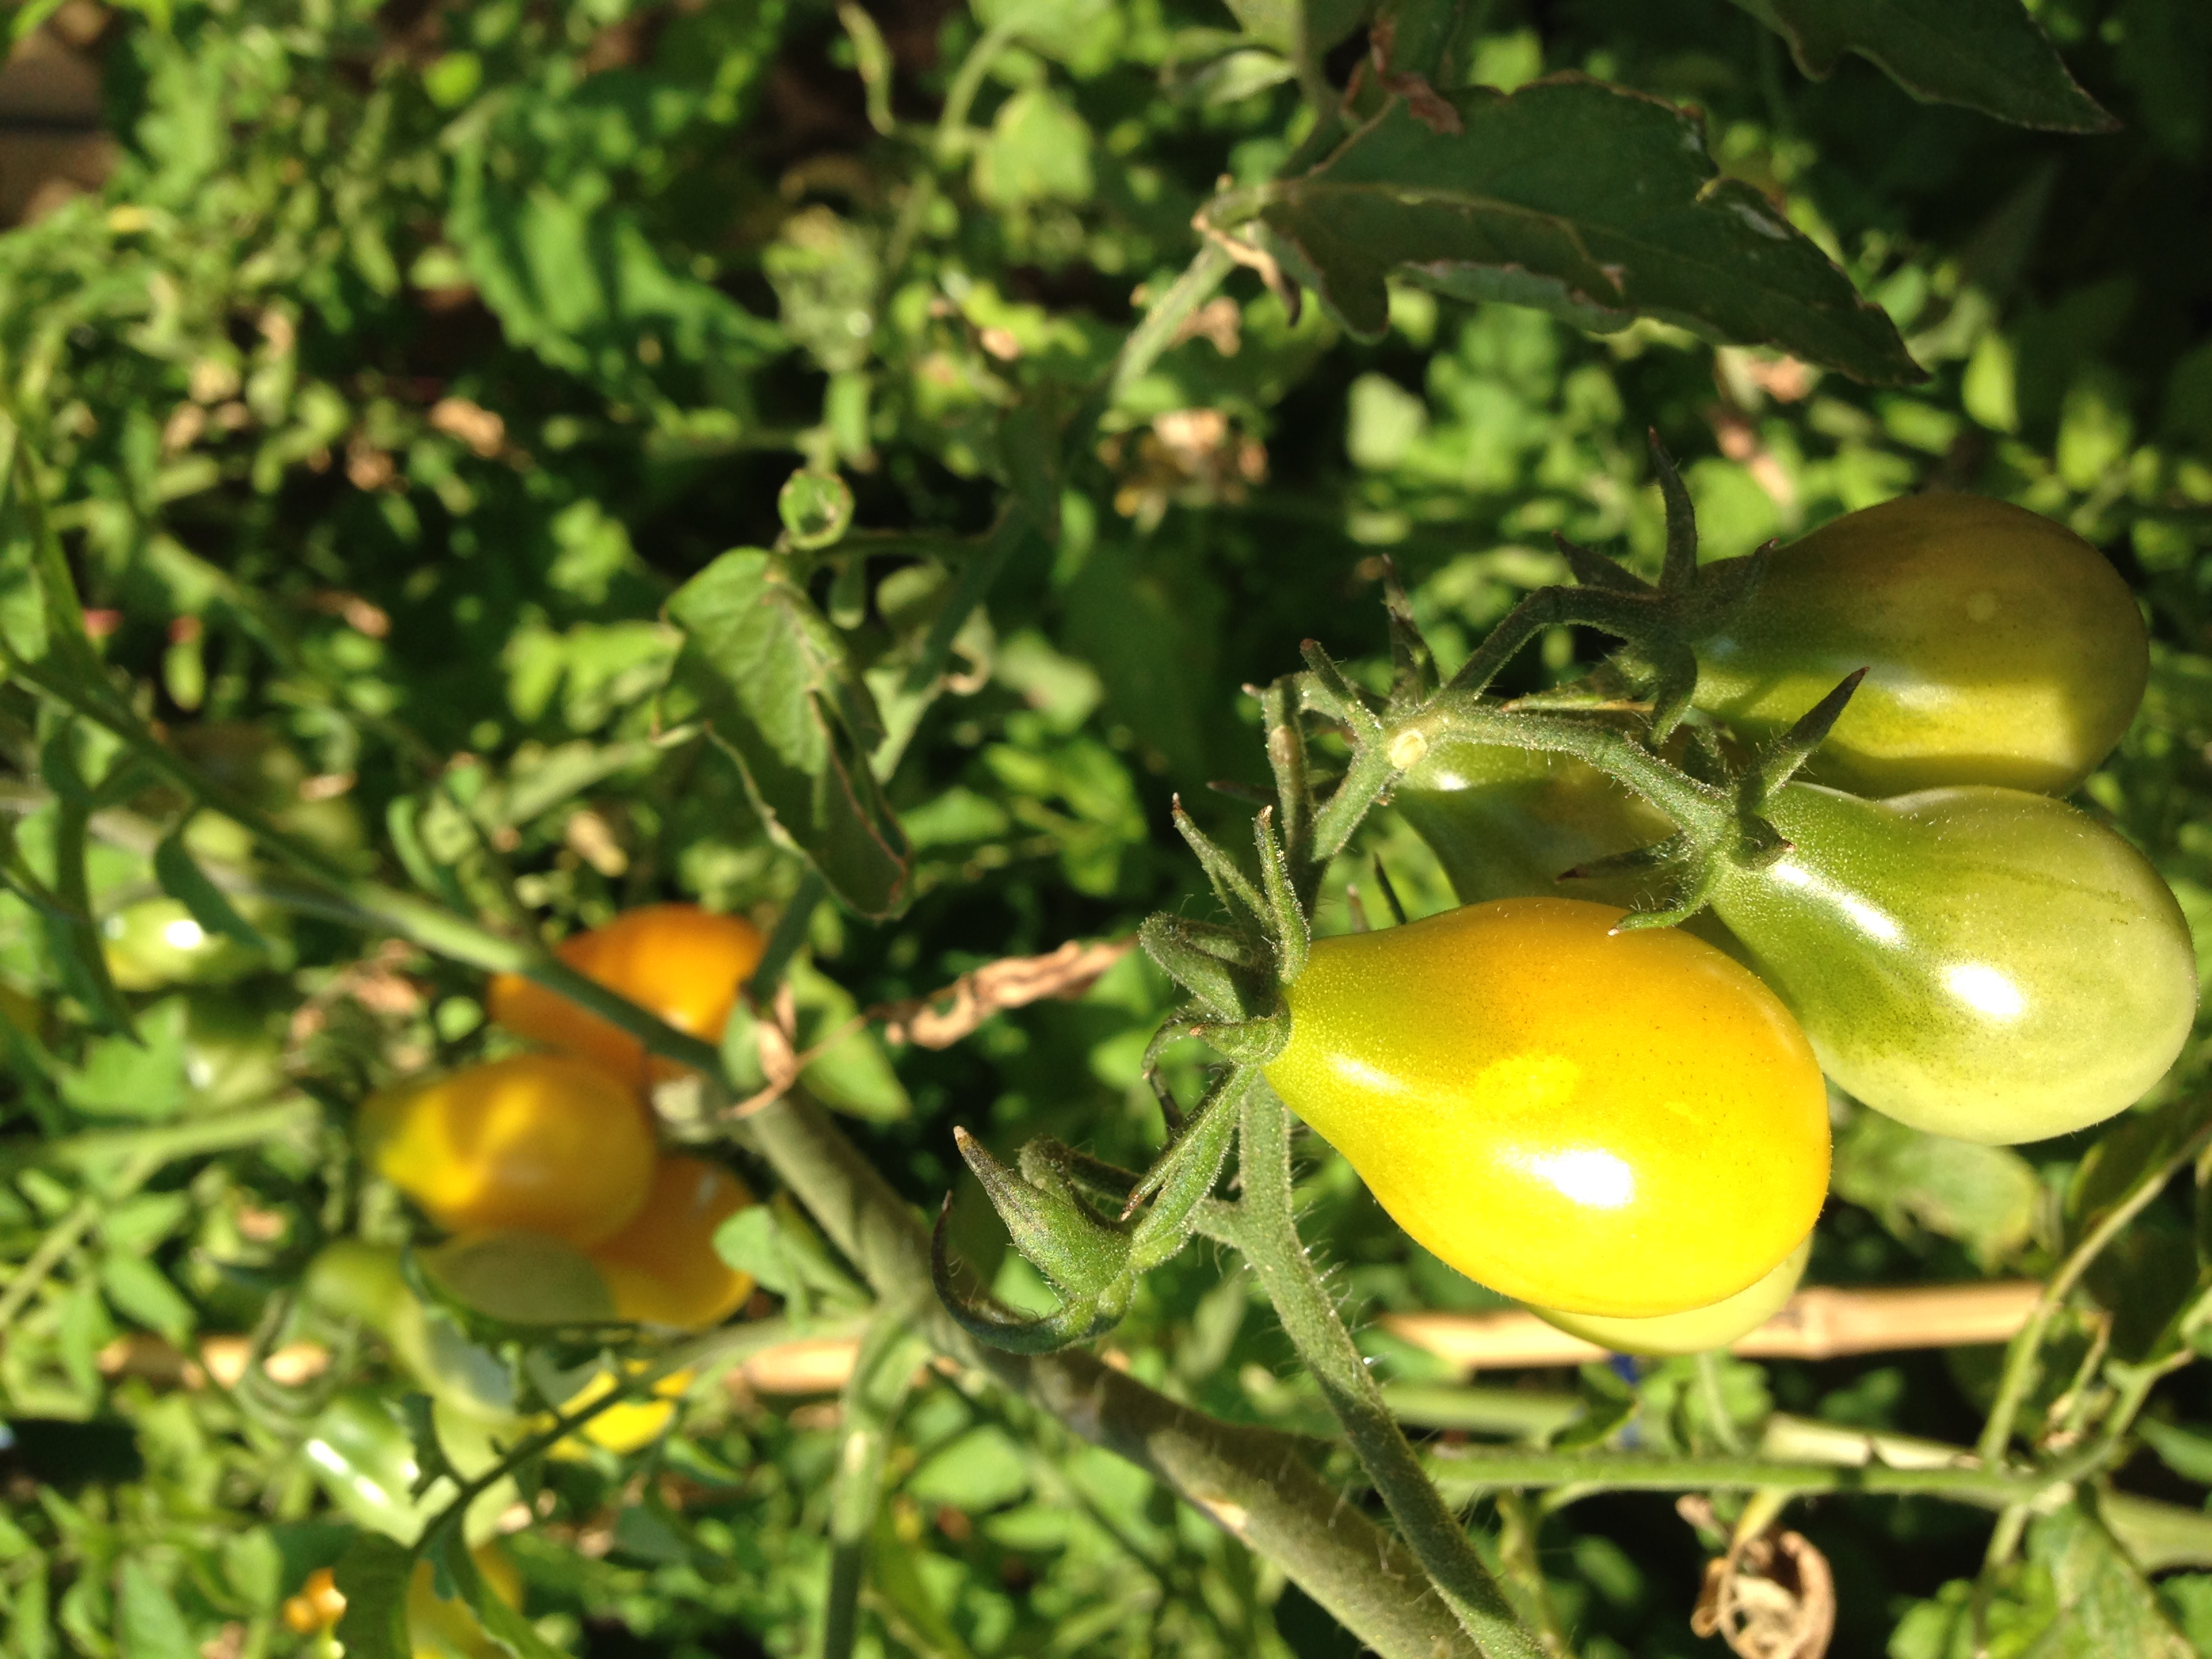 Tomate poire